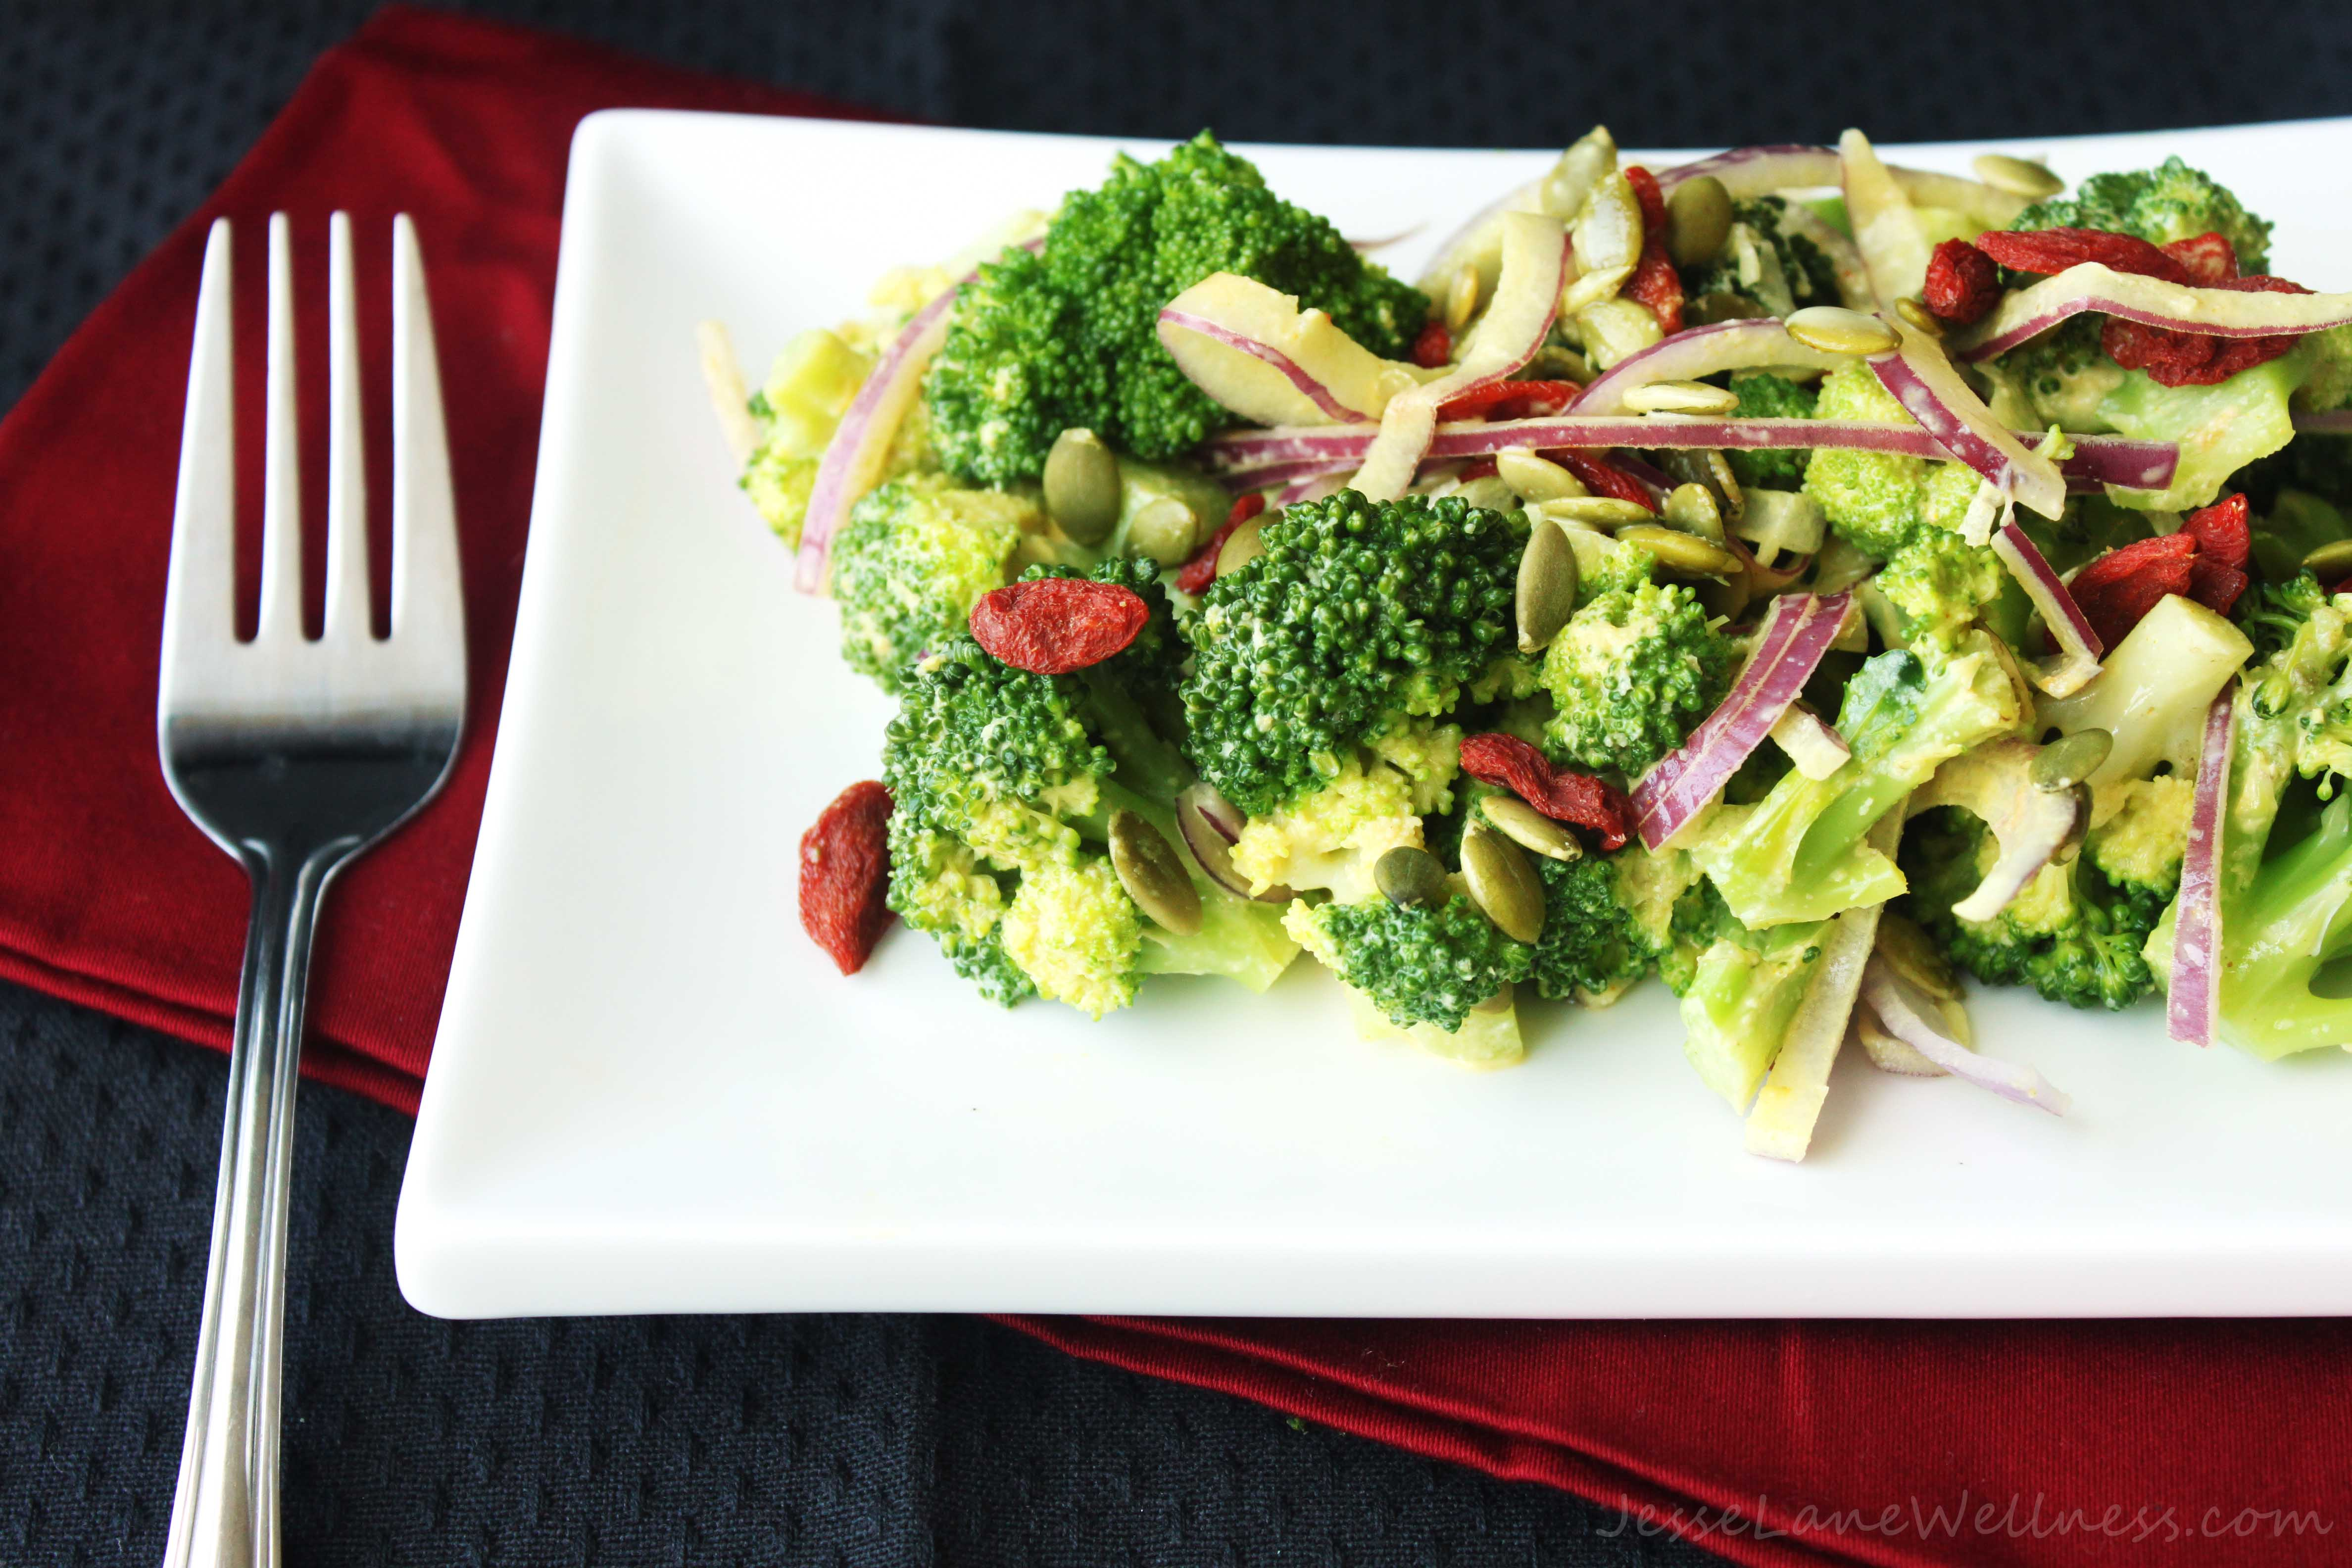 Creamy Broccoli Salad Recipe (vegan, gluten free, paleo)